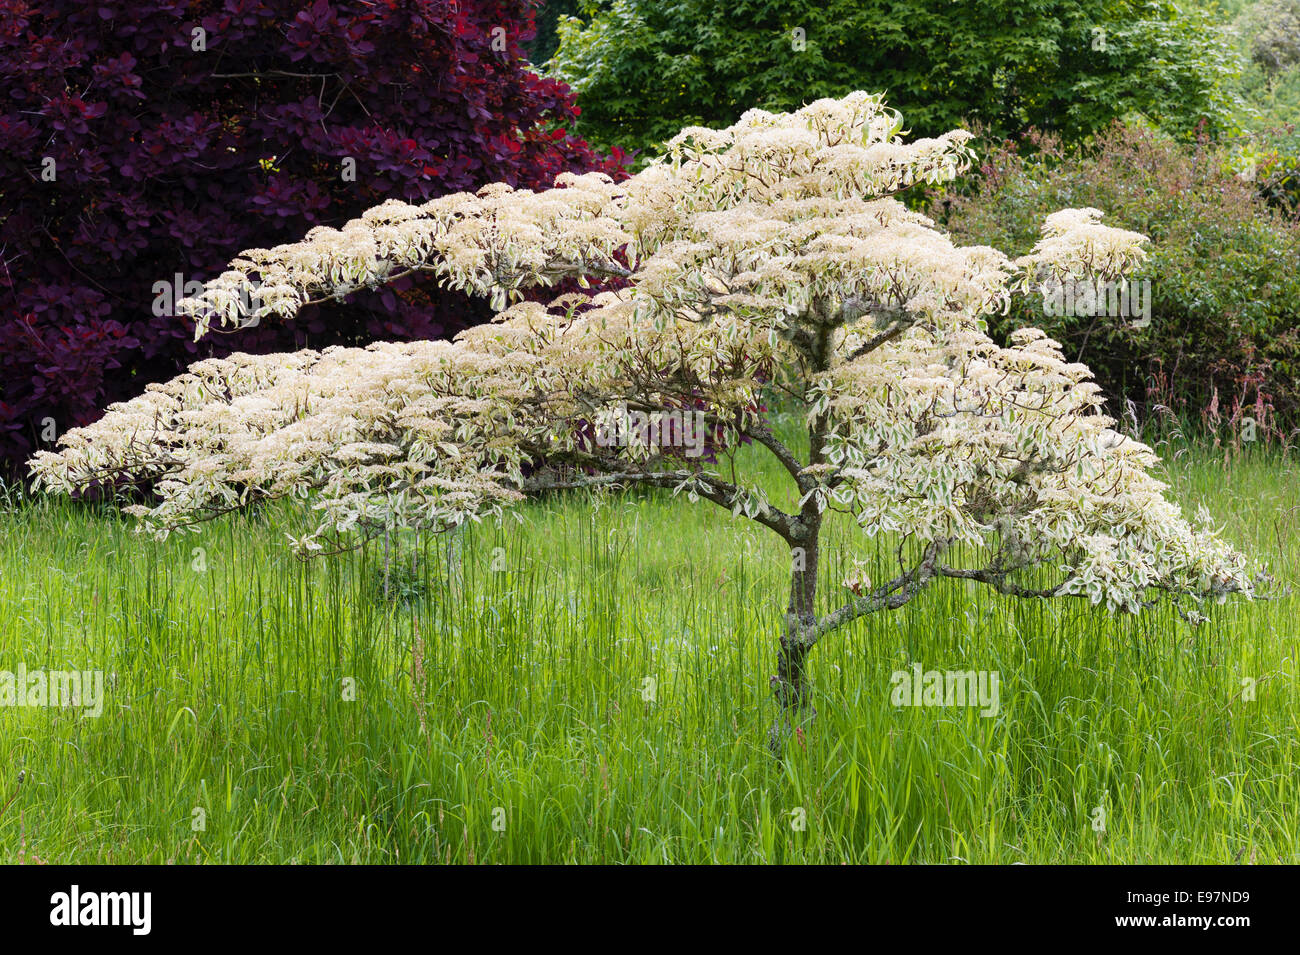 the wedding cake tree antony torpoint cornwall a wedding cake tree cornus 20916